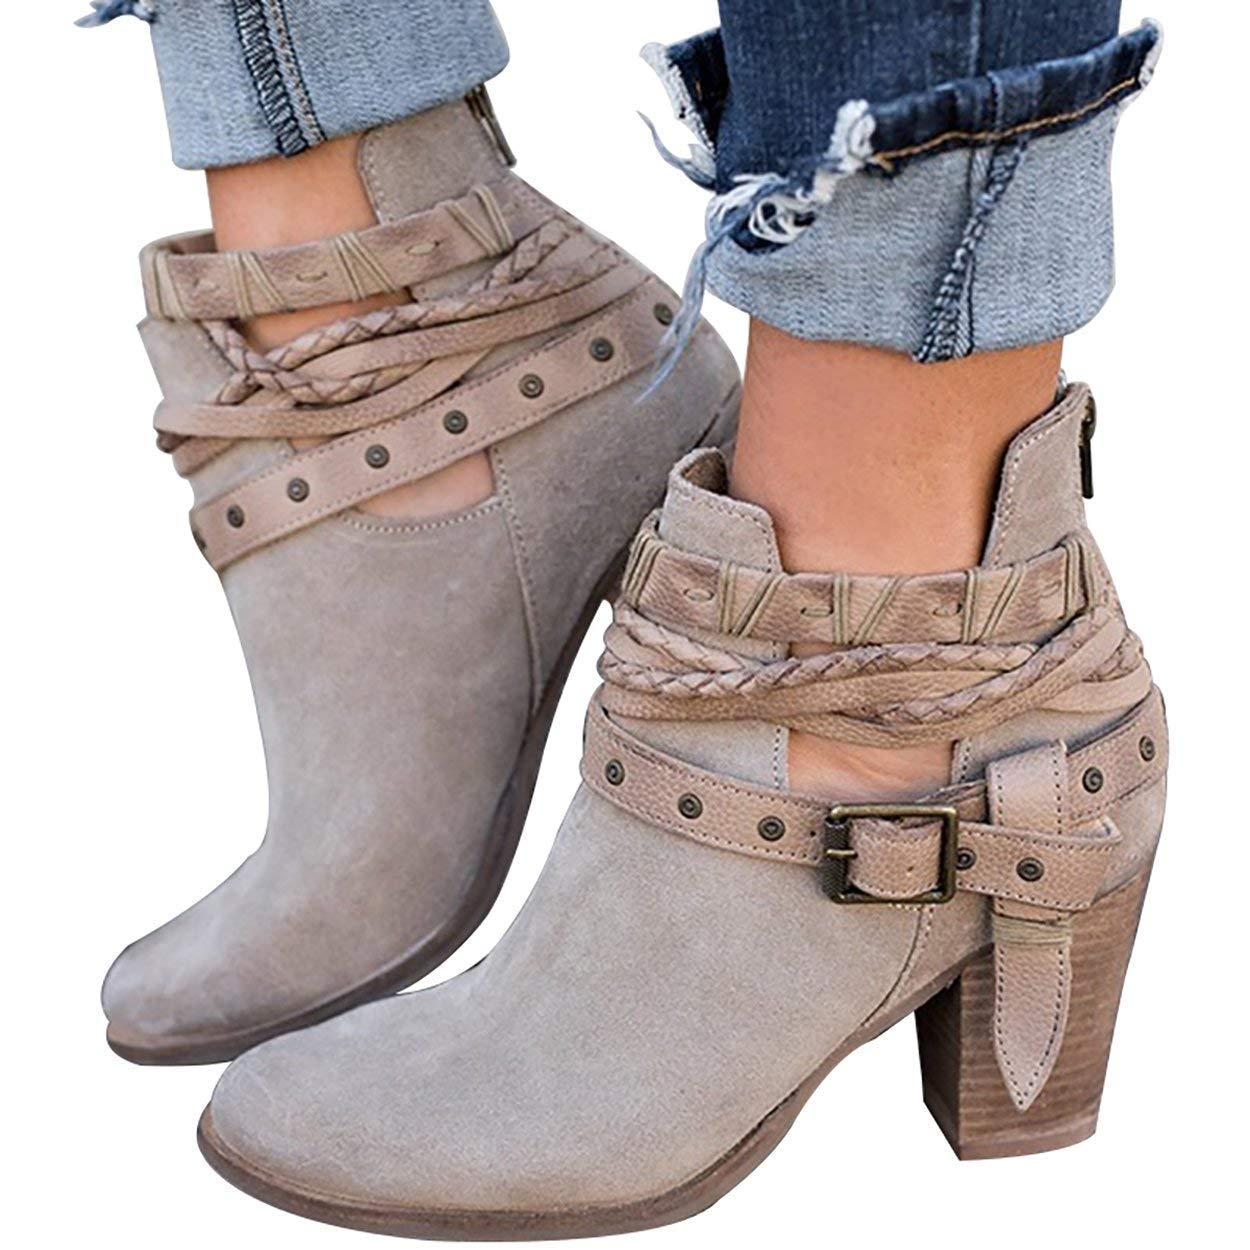 Maybest Women Autumn Round Toe Lace up Ankle Buckle Chunky High Heel Platform Knight Martin Boots Gray 9 B (M) US